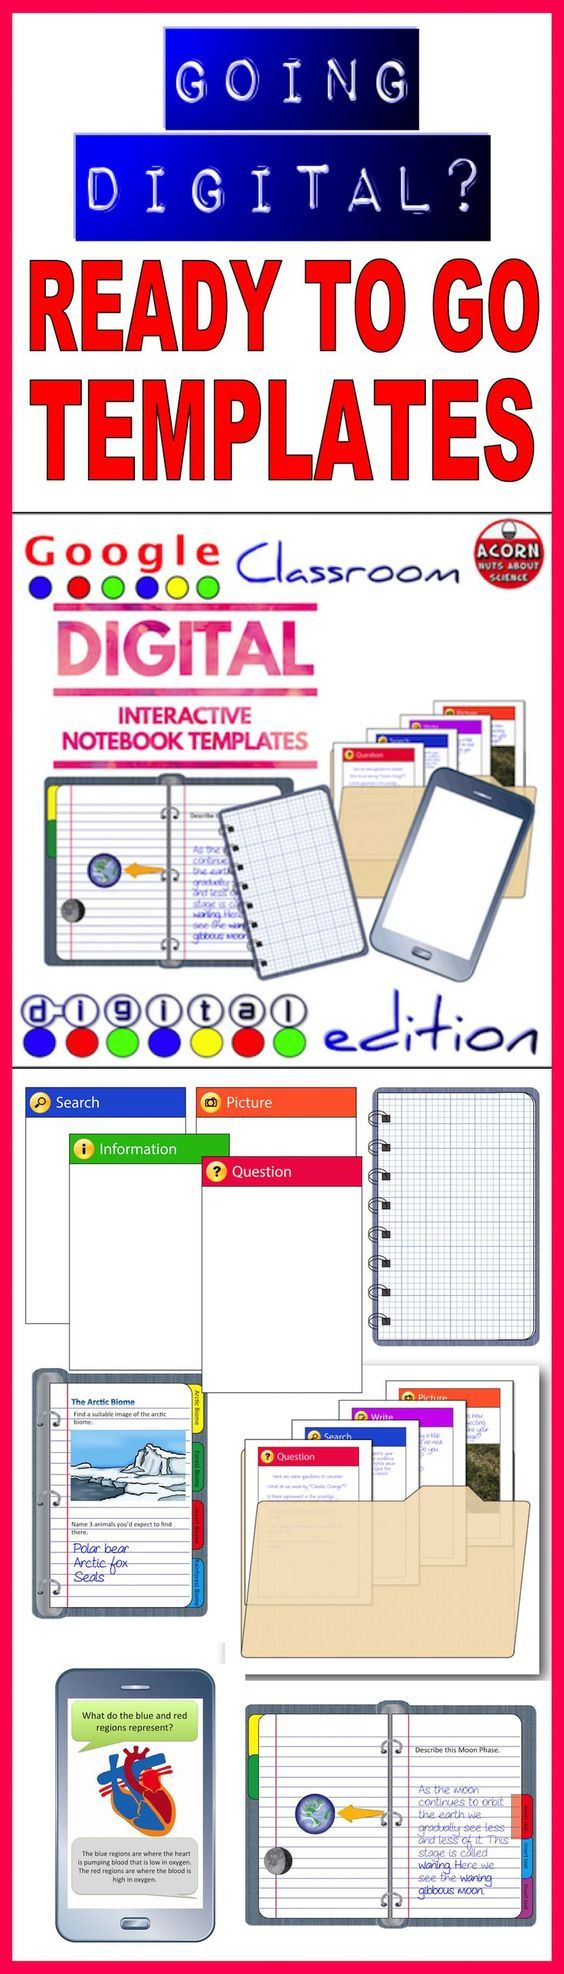 75 pages of digital interactive notebook templates including tabbed organizers, folders and mobile phones. The files are in powerpoint format and come as a zipped file.